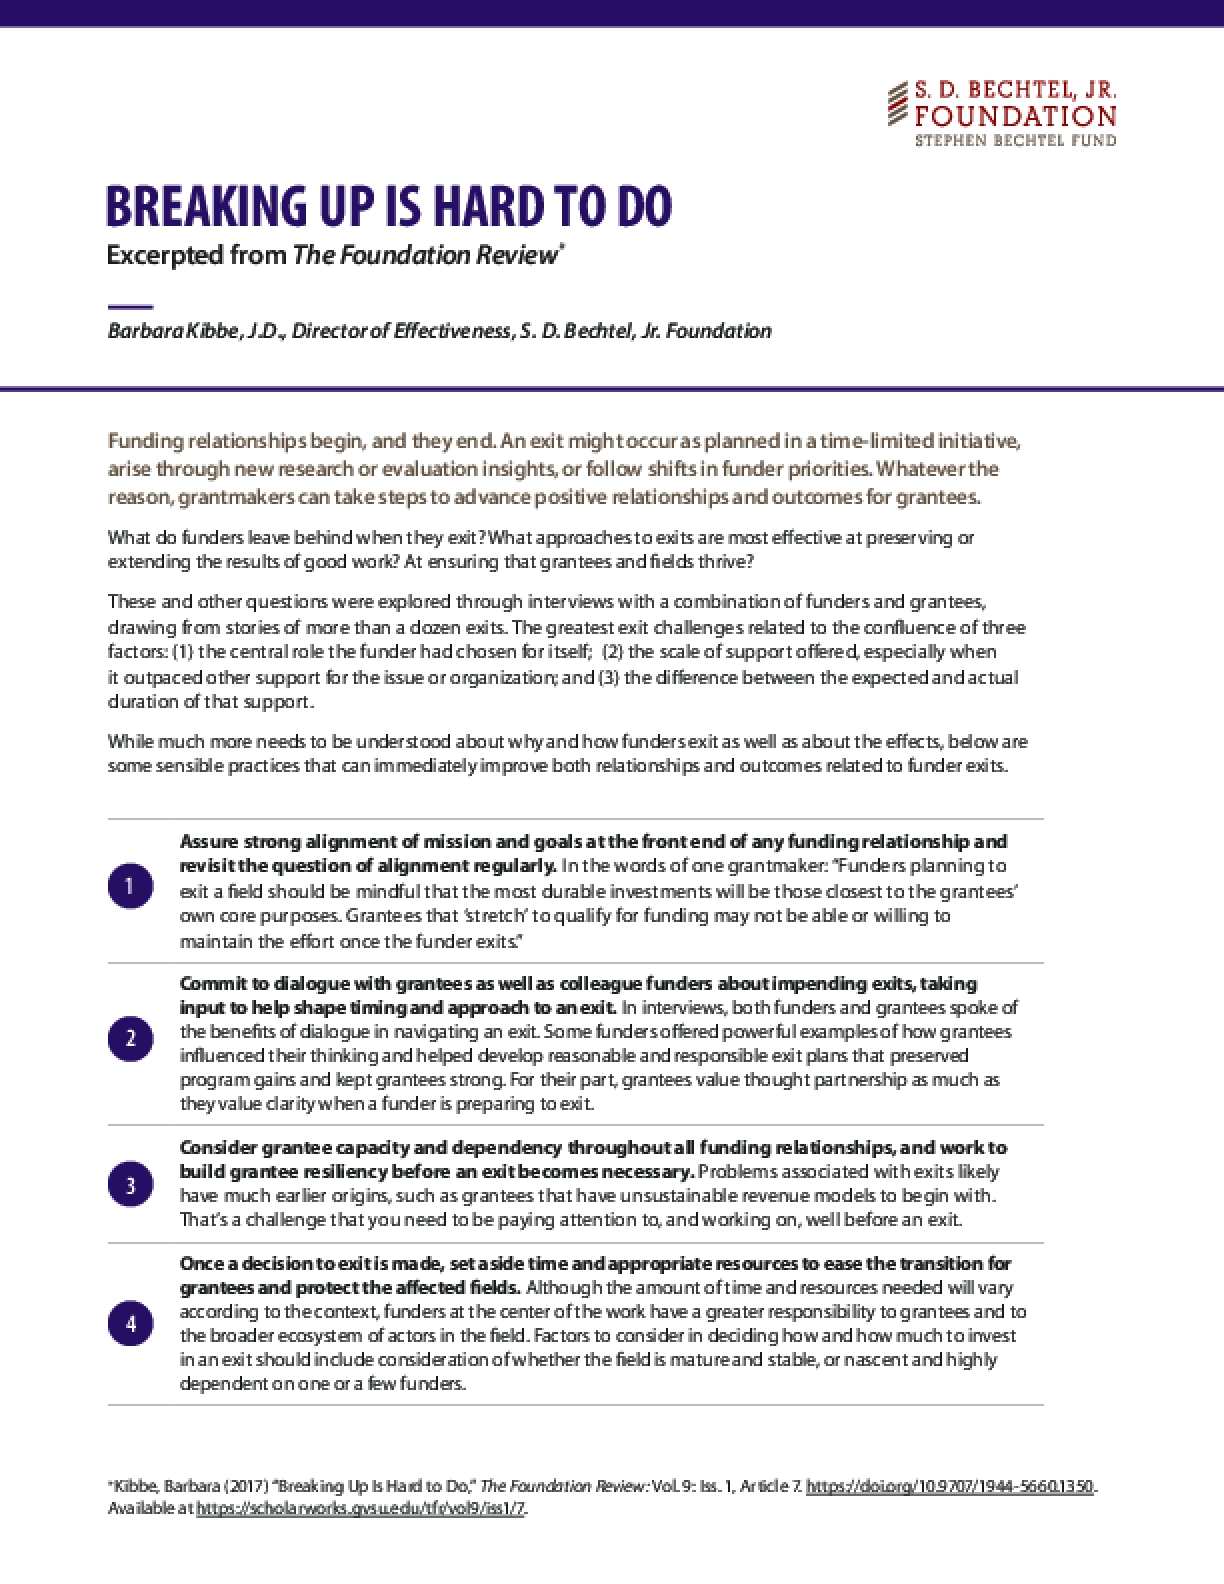 Breaking Up Is Hard to Do(Excerpted from the Foundation Review)